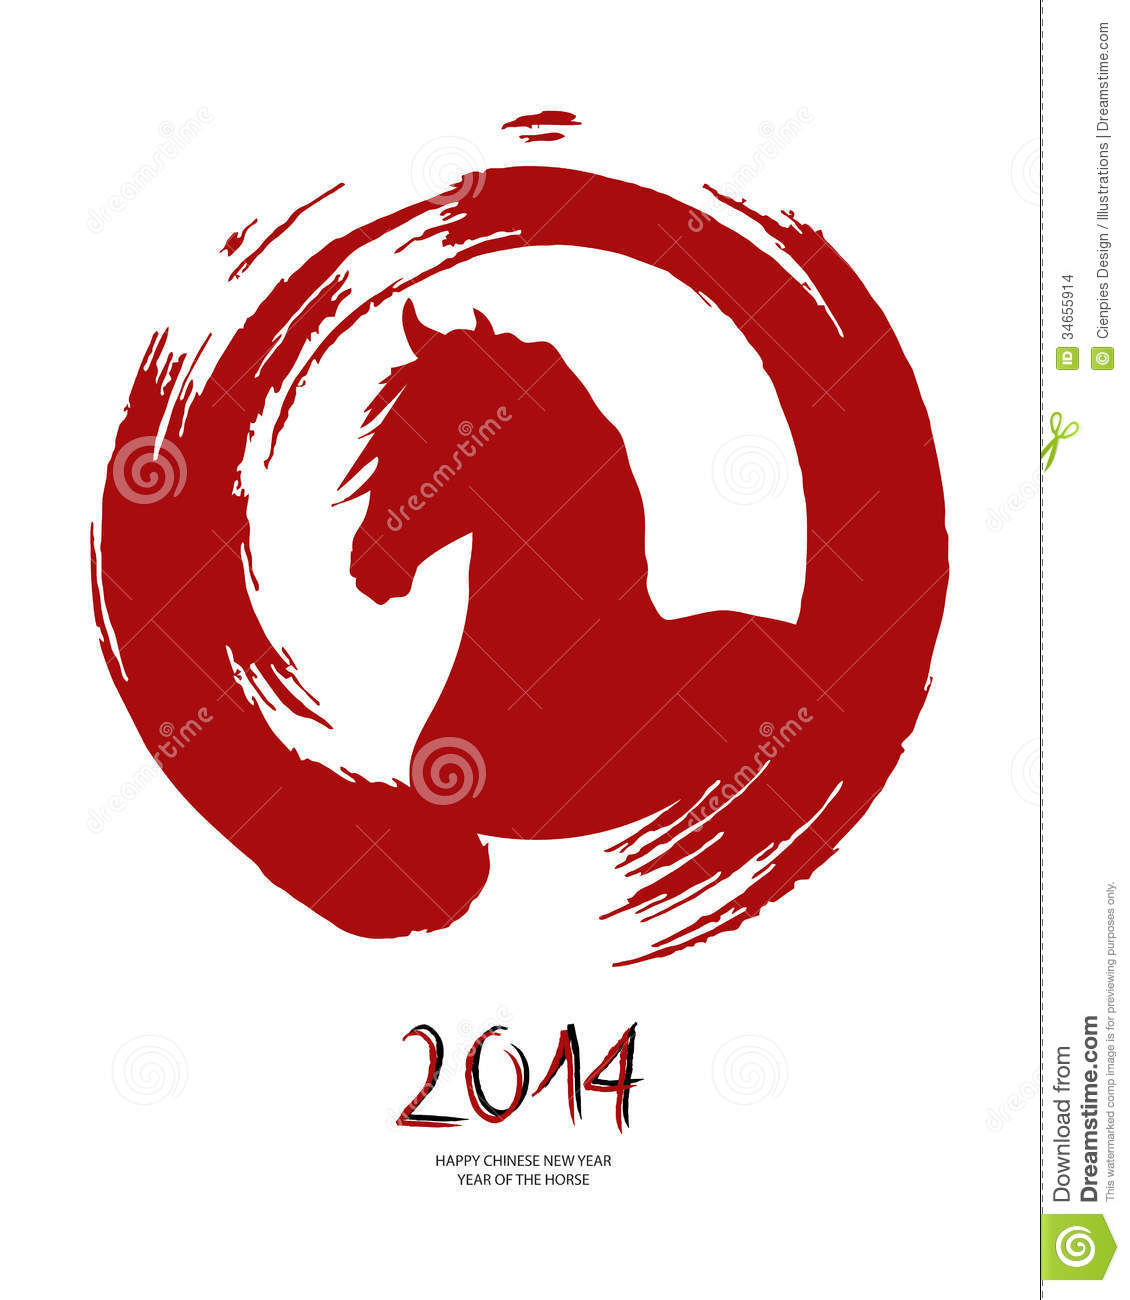 Stock Images: Chinese new year of the Horse red brush zen circle ...